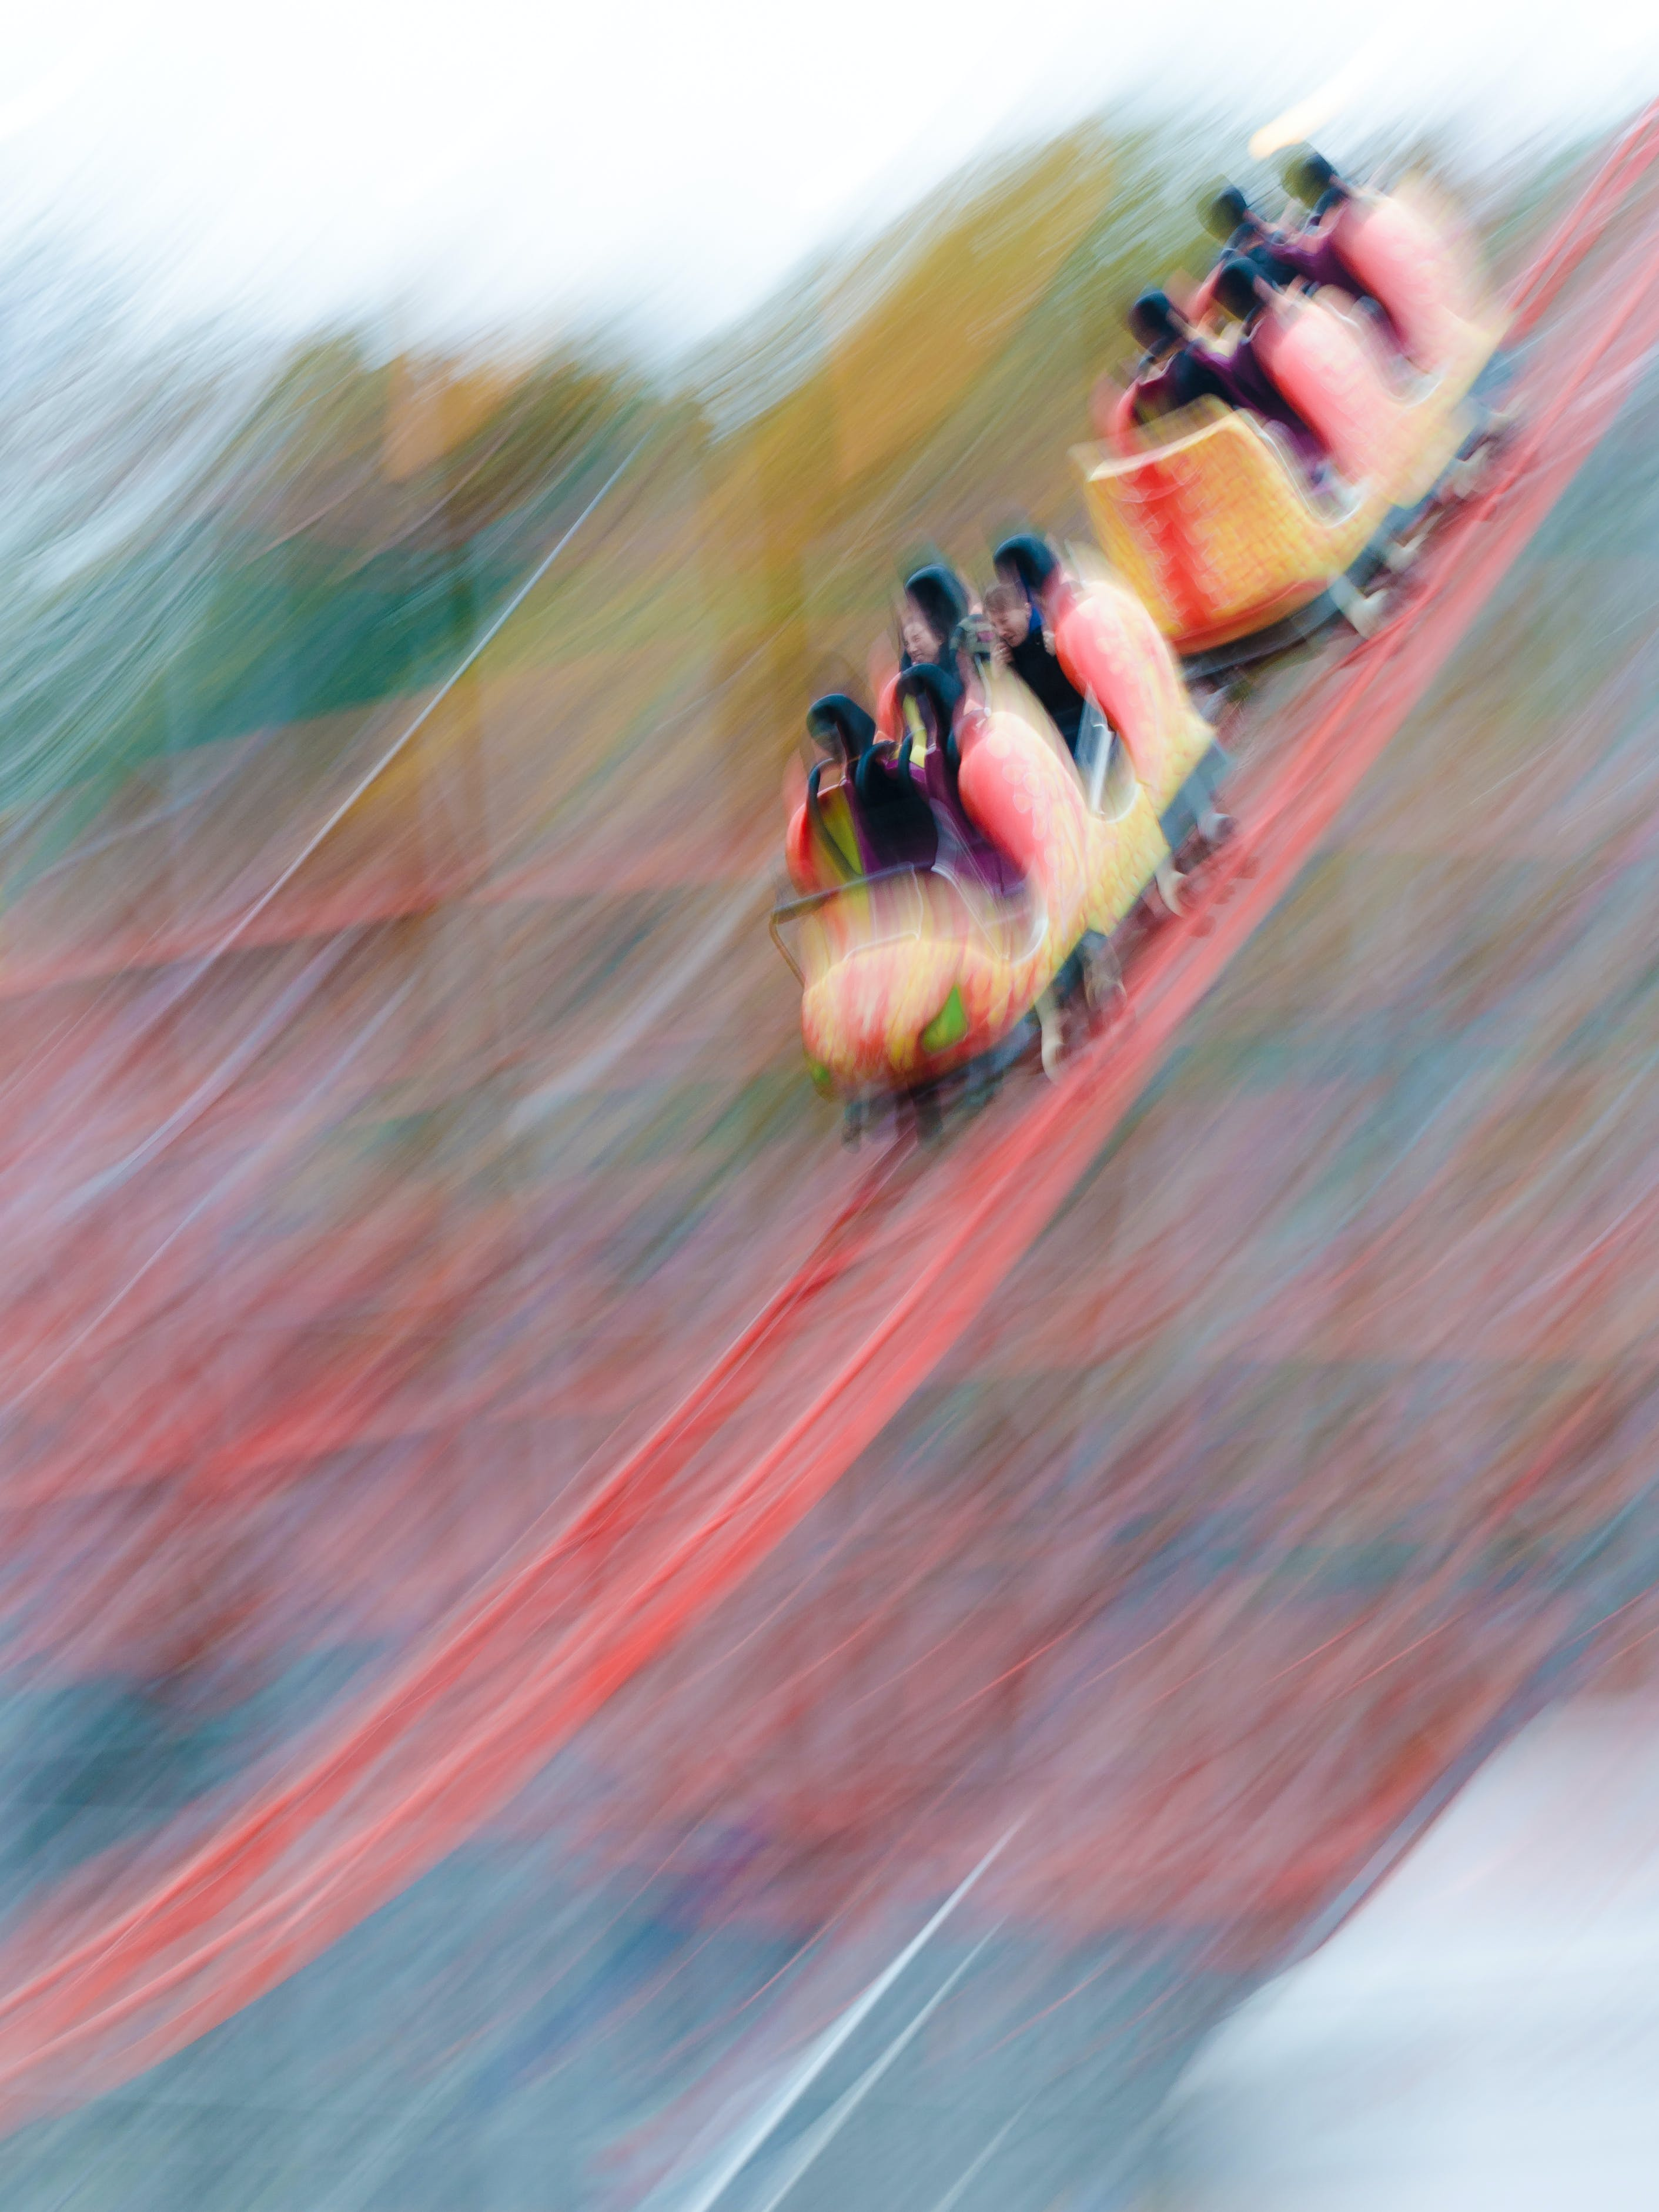 Free stock photo of blurred lines, high speed, motion blur, roller coaster